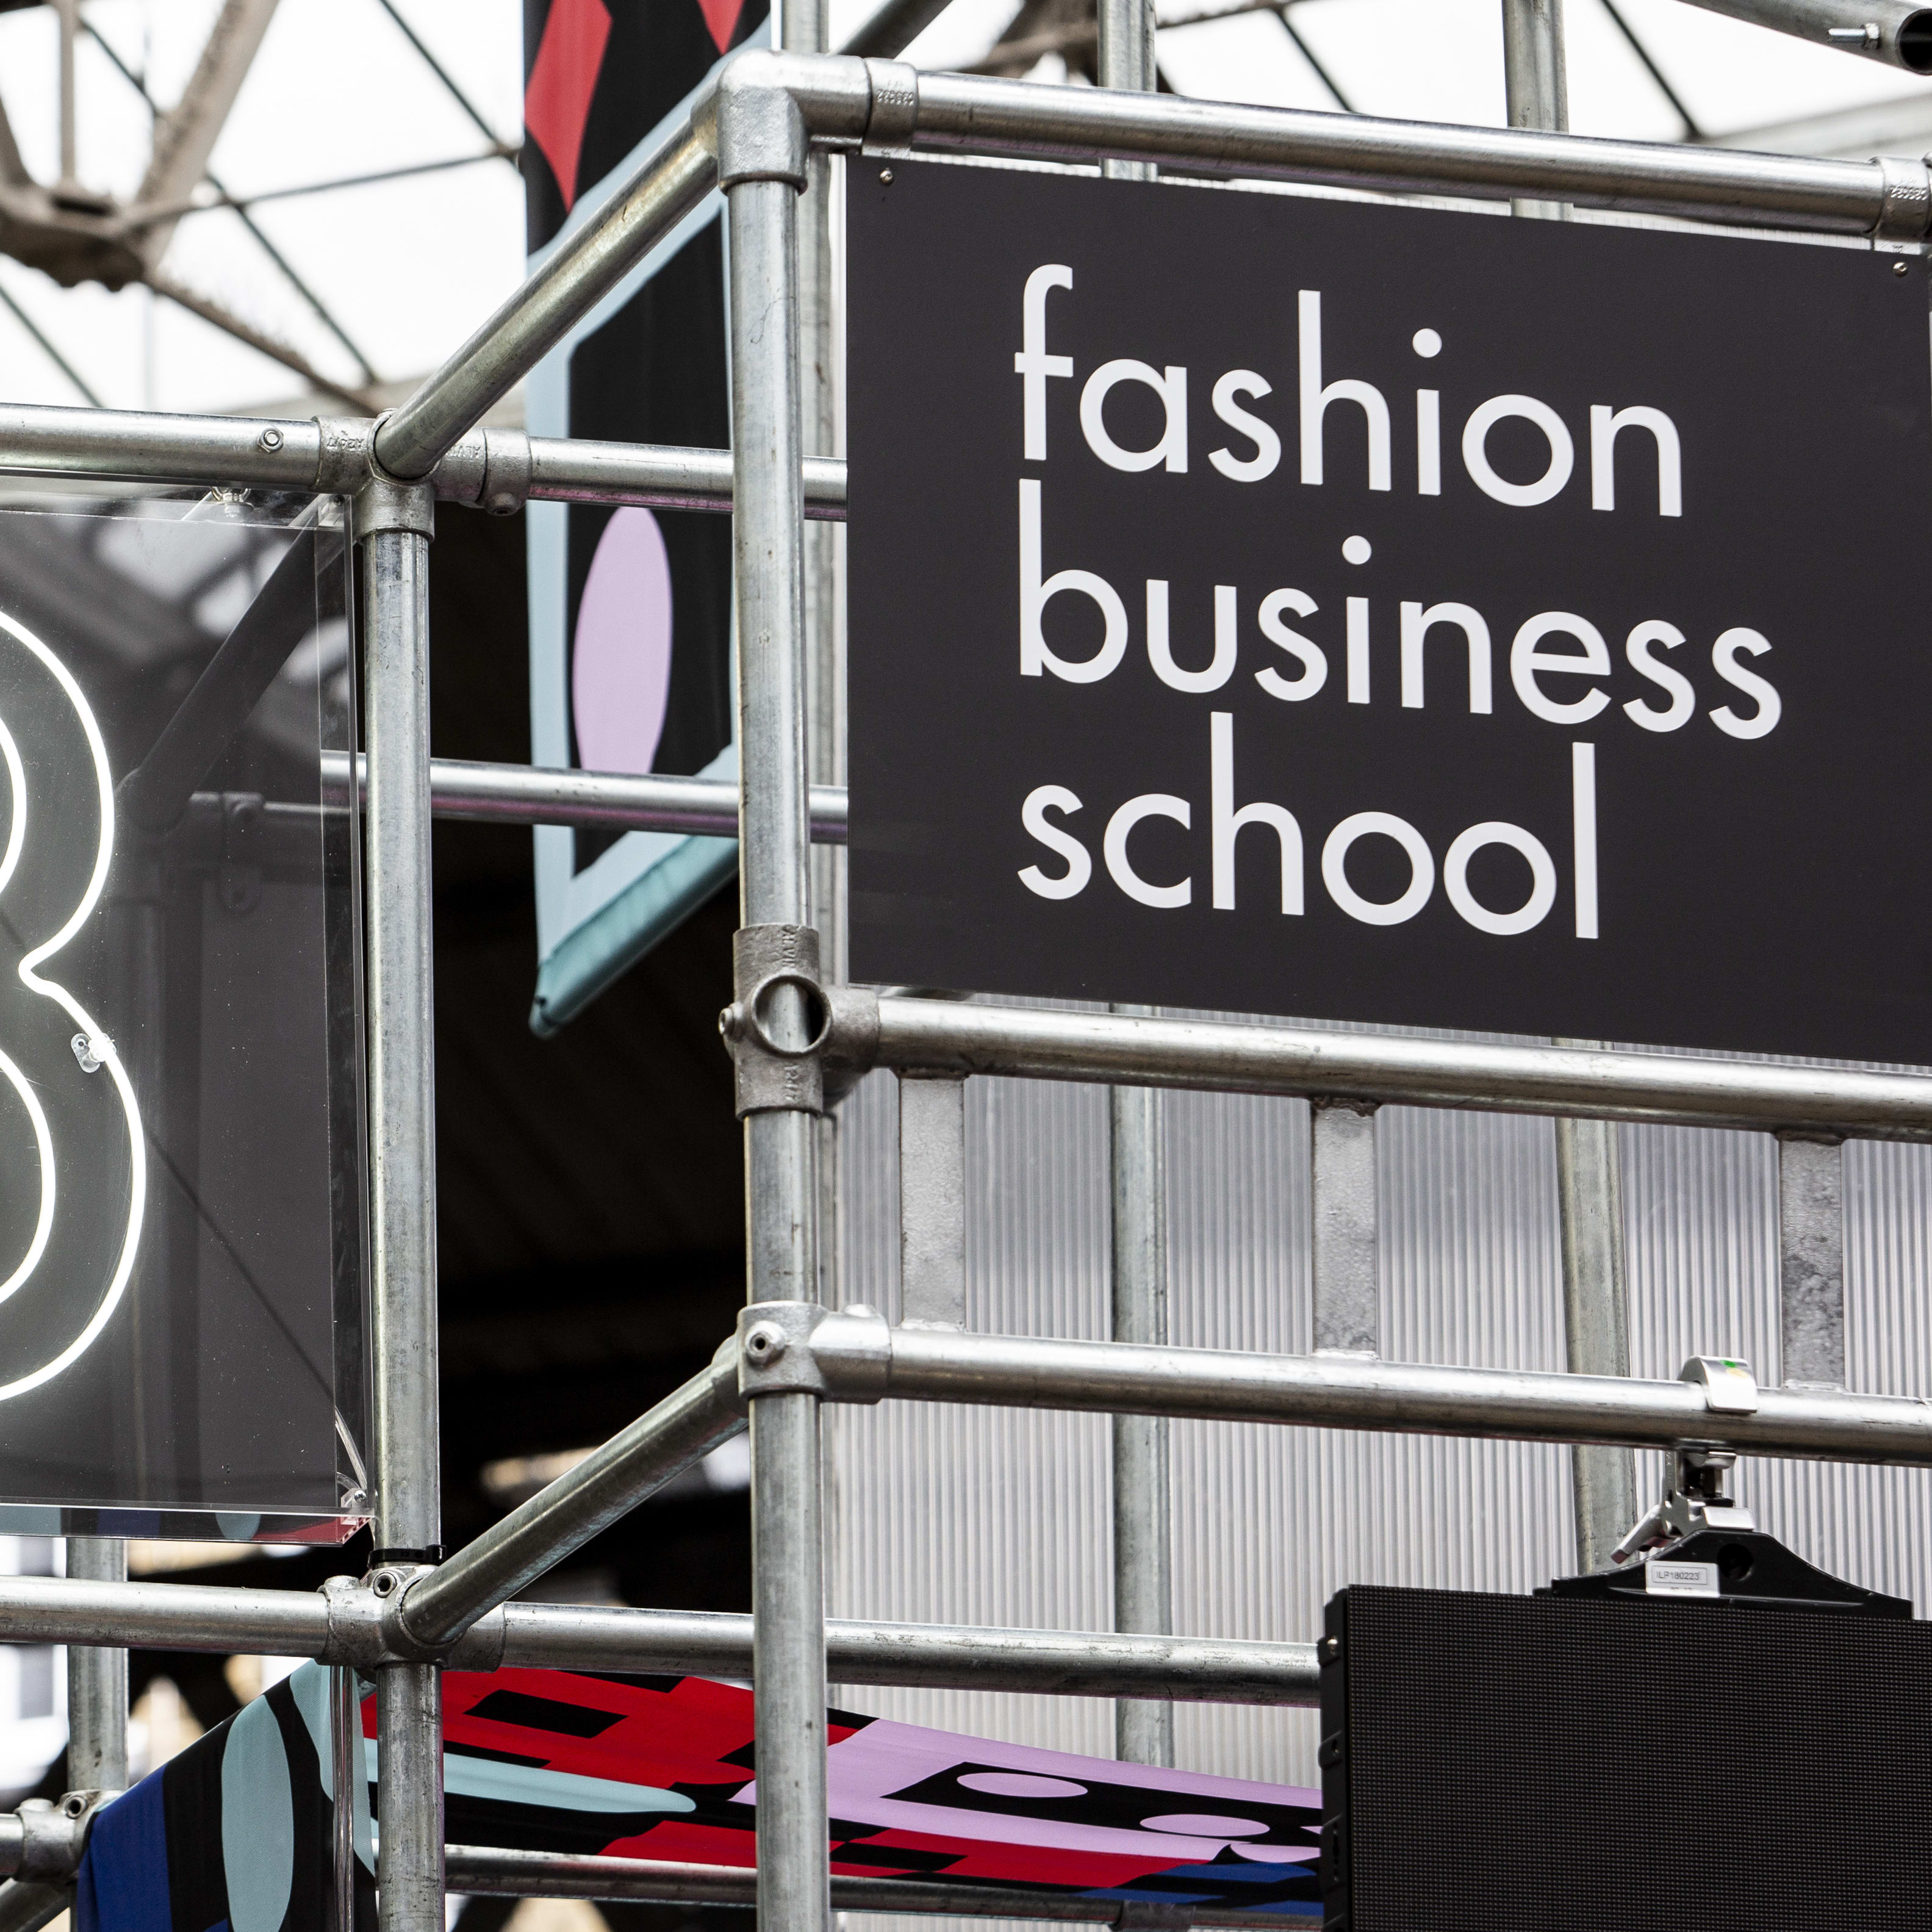 Fashion Means Business 19 by Fashion Innovation Agency at Spitalfields Market